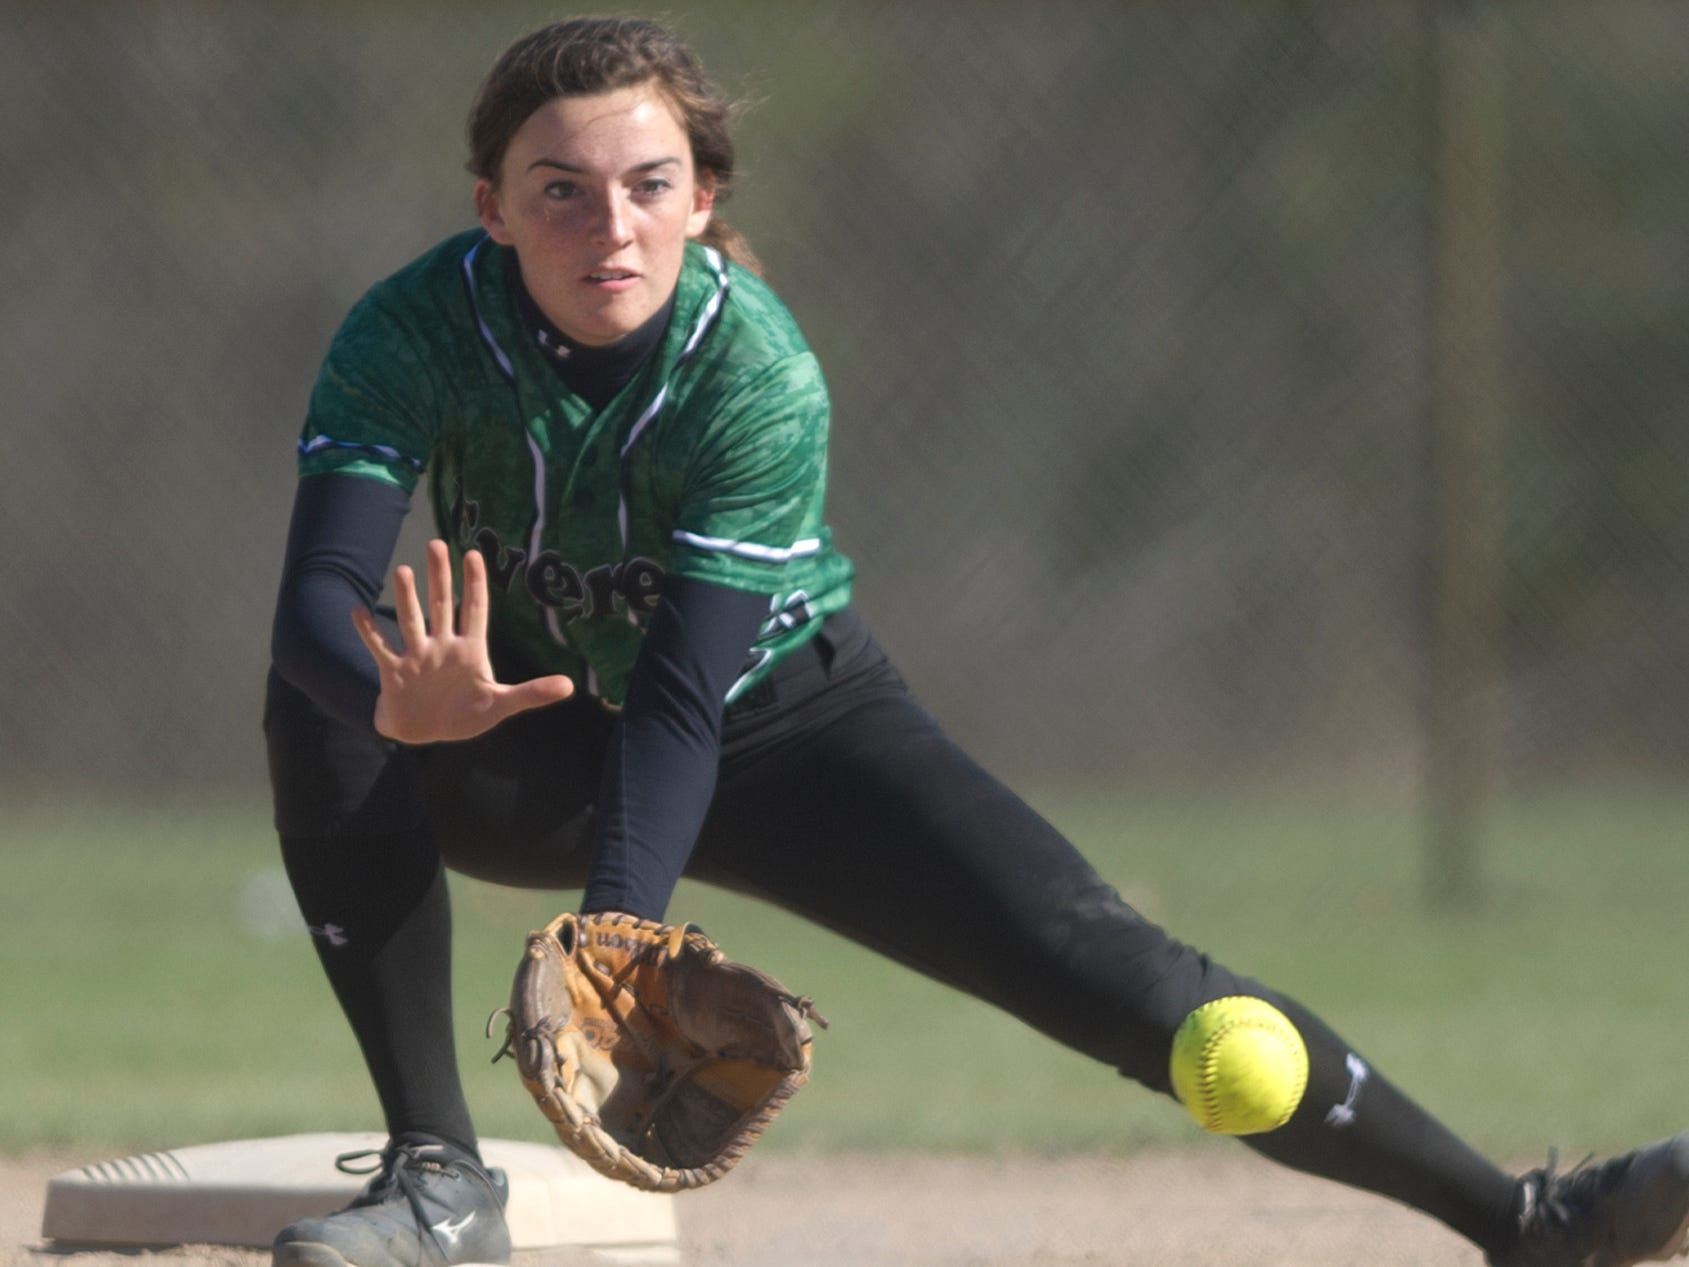 D.C. Everest's Ally Dzurka fields a ball during a Wisconsin Valley Conference softball game Thursday against Wisconsin Rapids at Lincoln High School in Wisconsin Rapids.